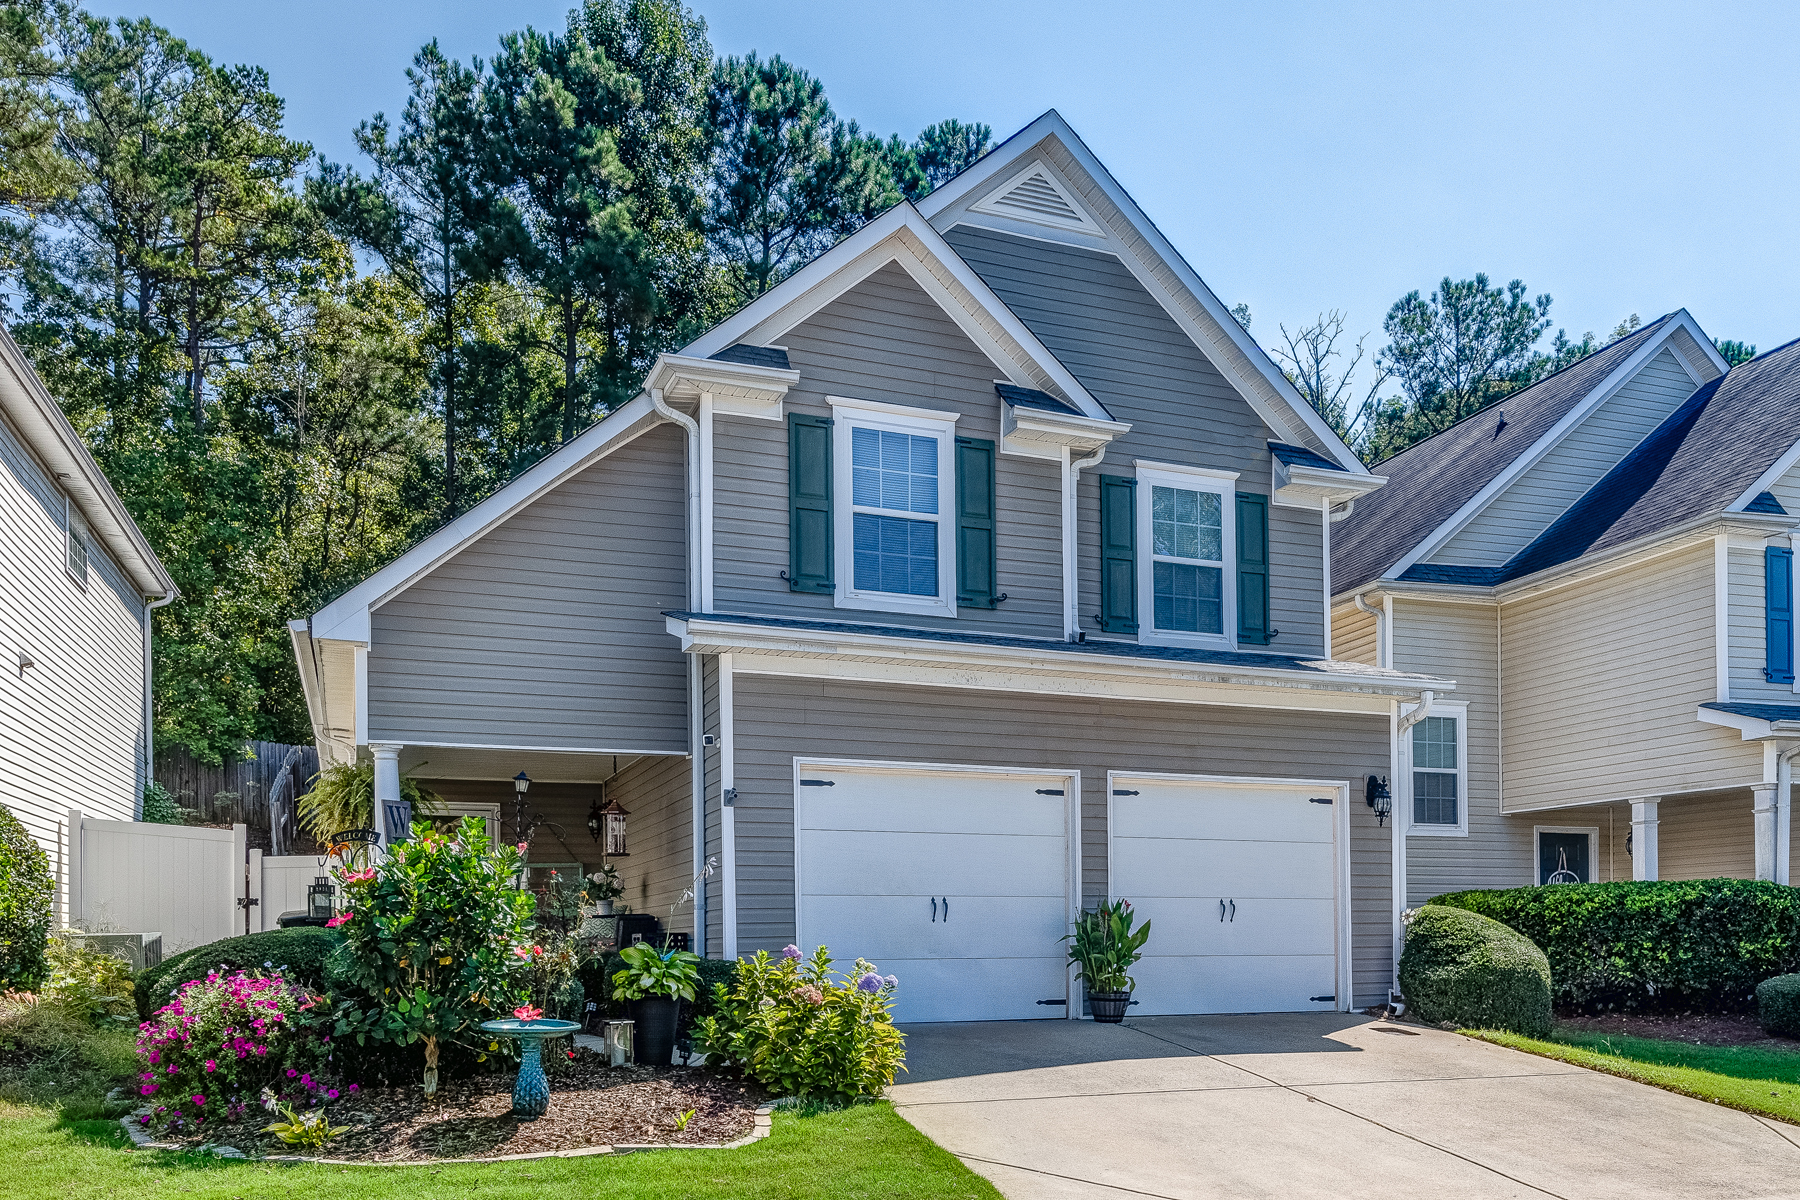 Single Family Home for Sale at Beautiful Three Bedroom, Two and a Half Bath Home in Gated Swim Community 133 Highland Falls Drive Hiram, Georgia 30141 United States